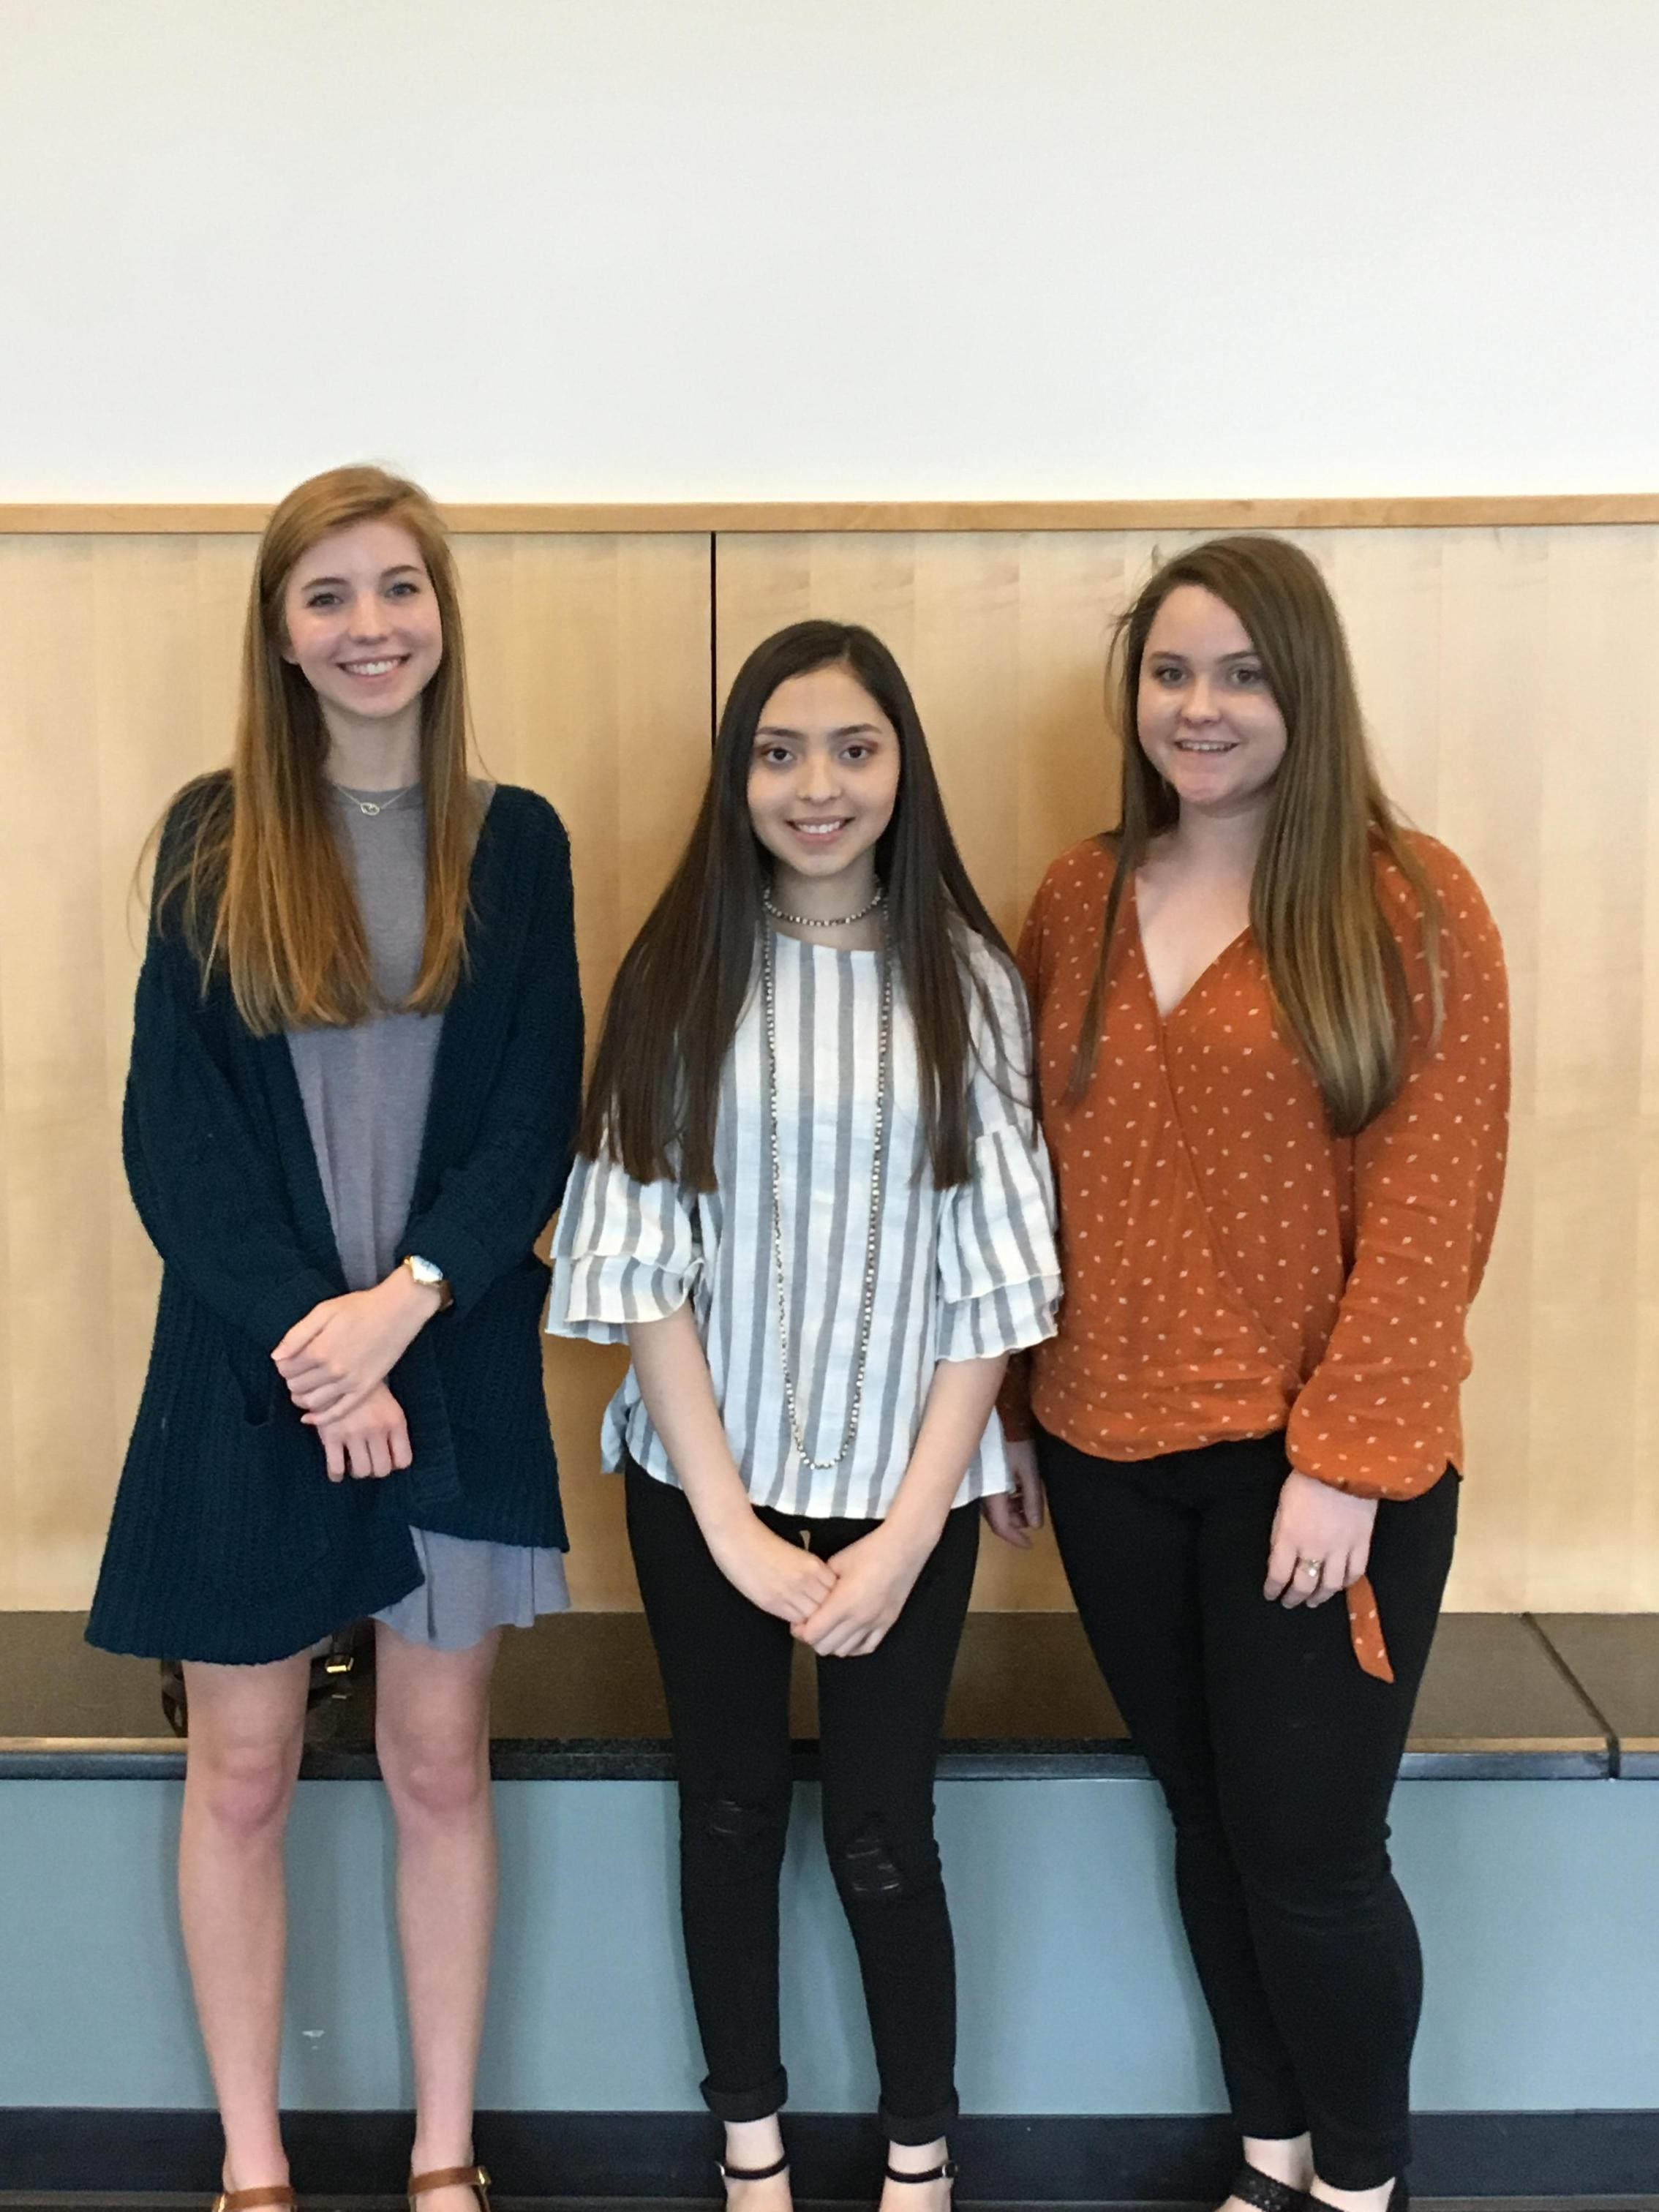 Emily Dismukes, Lesley Moreno, and Cynthia Hewitt competed in the argumentative, personal, and rhetorical essay events.  Emily placed 2nd and Cynthia placed 3rd.